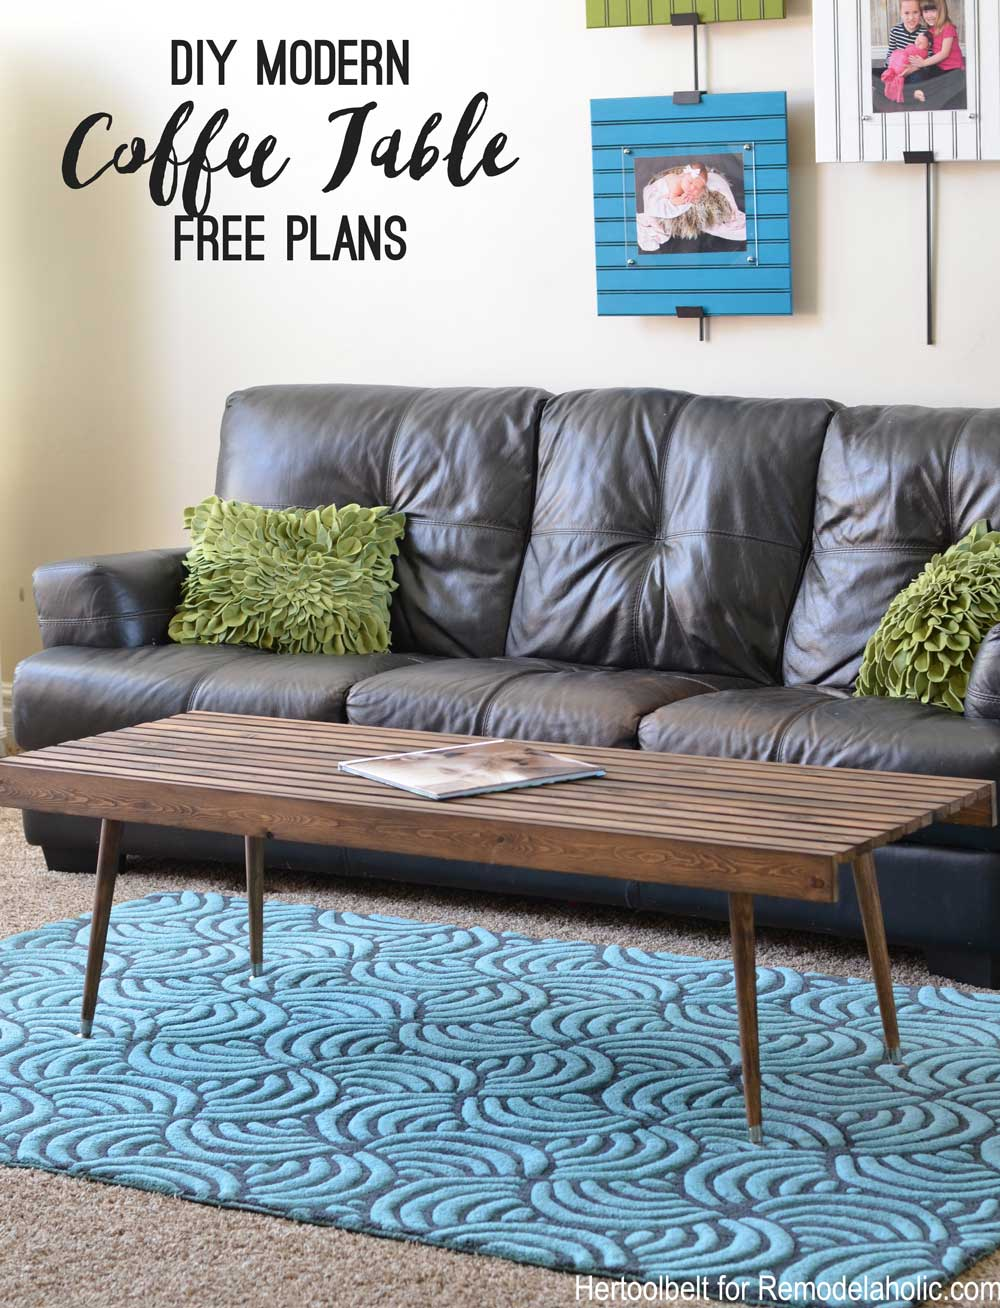 Remodelaholic diy modern slat coffee table building plan enjoy your new coffee table add some mid century style to your home with this easy to build diy modern geotapseo Images